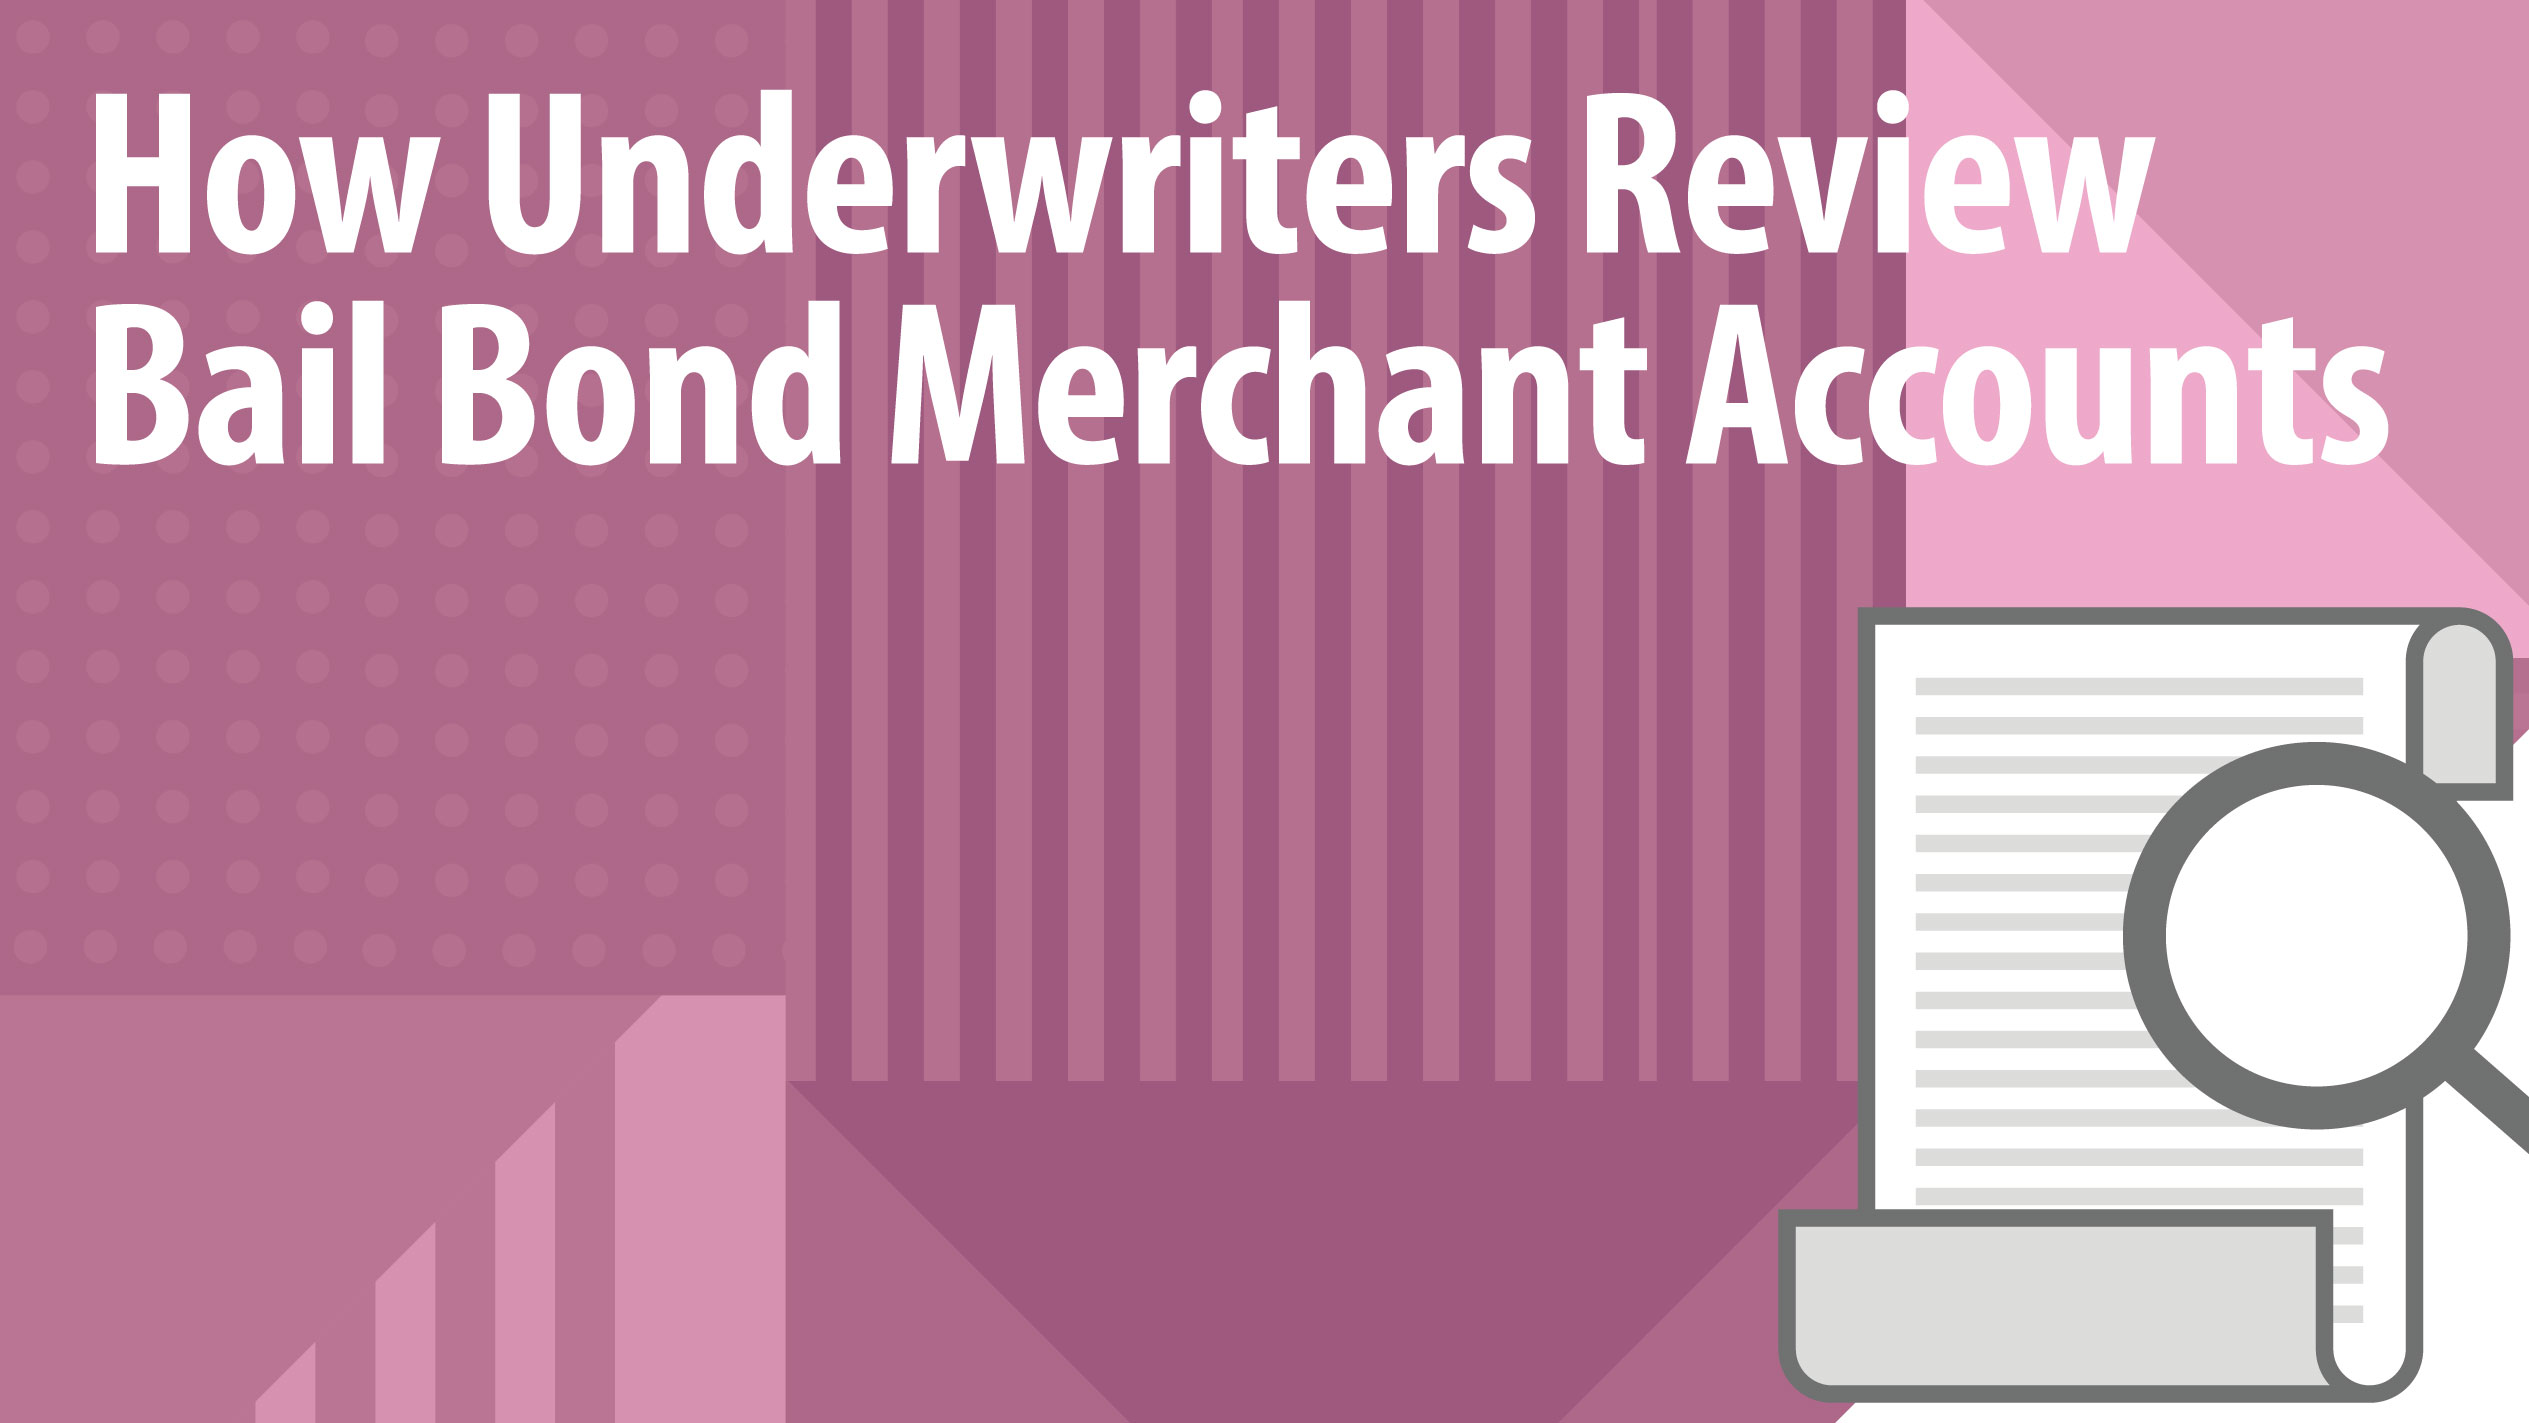 How Underwriters Review Bail Bond Merchant Accounts